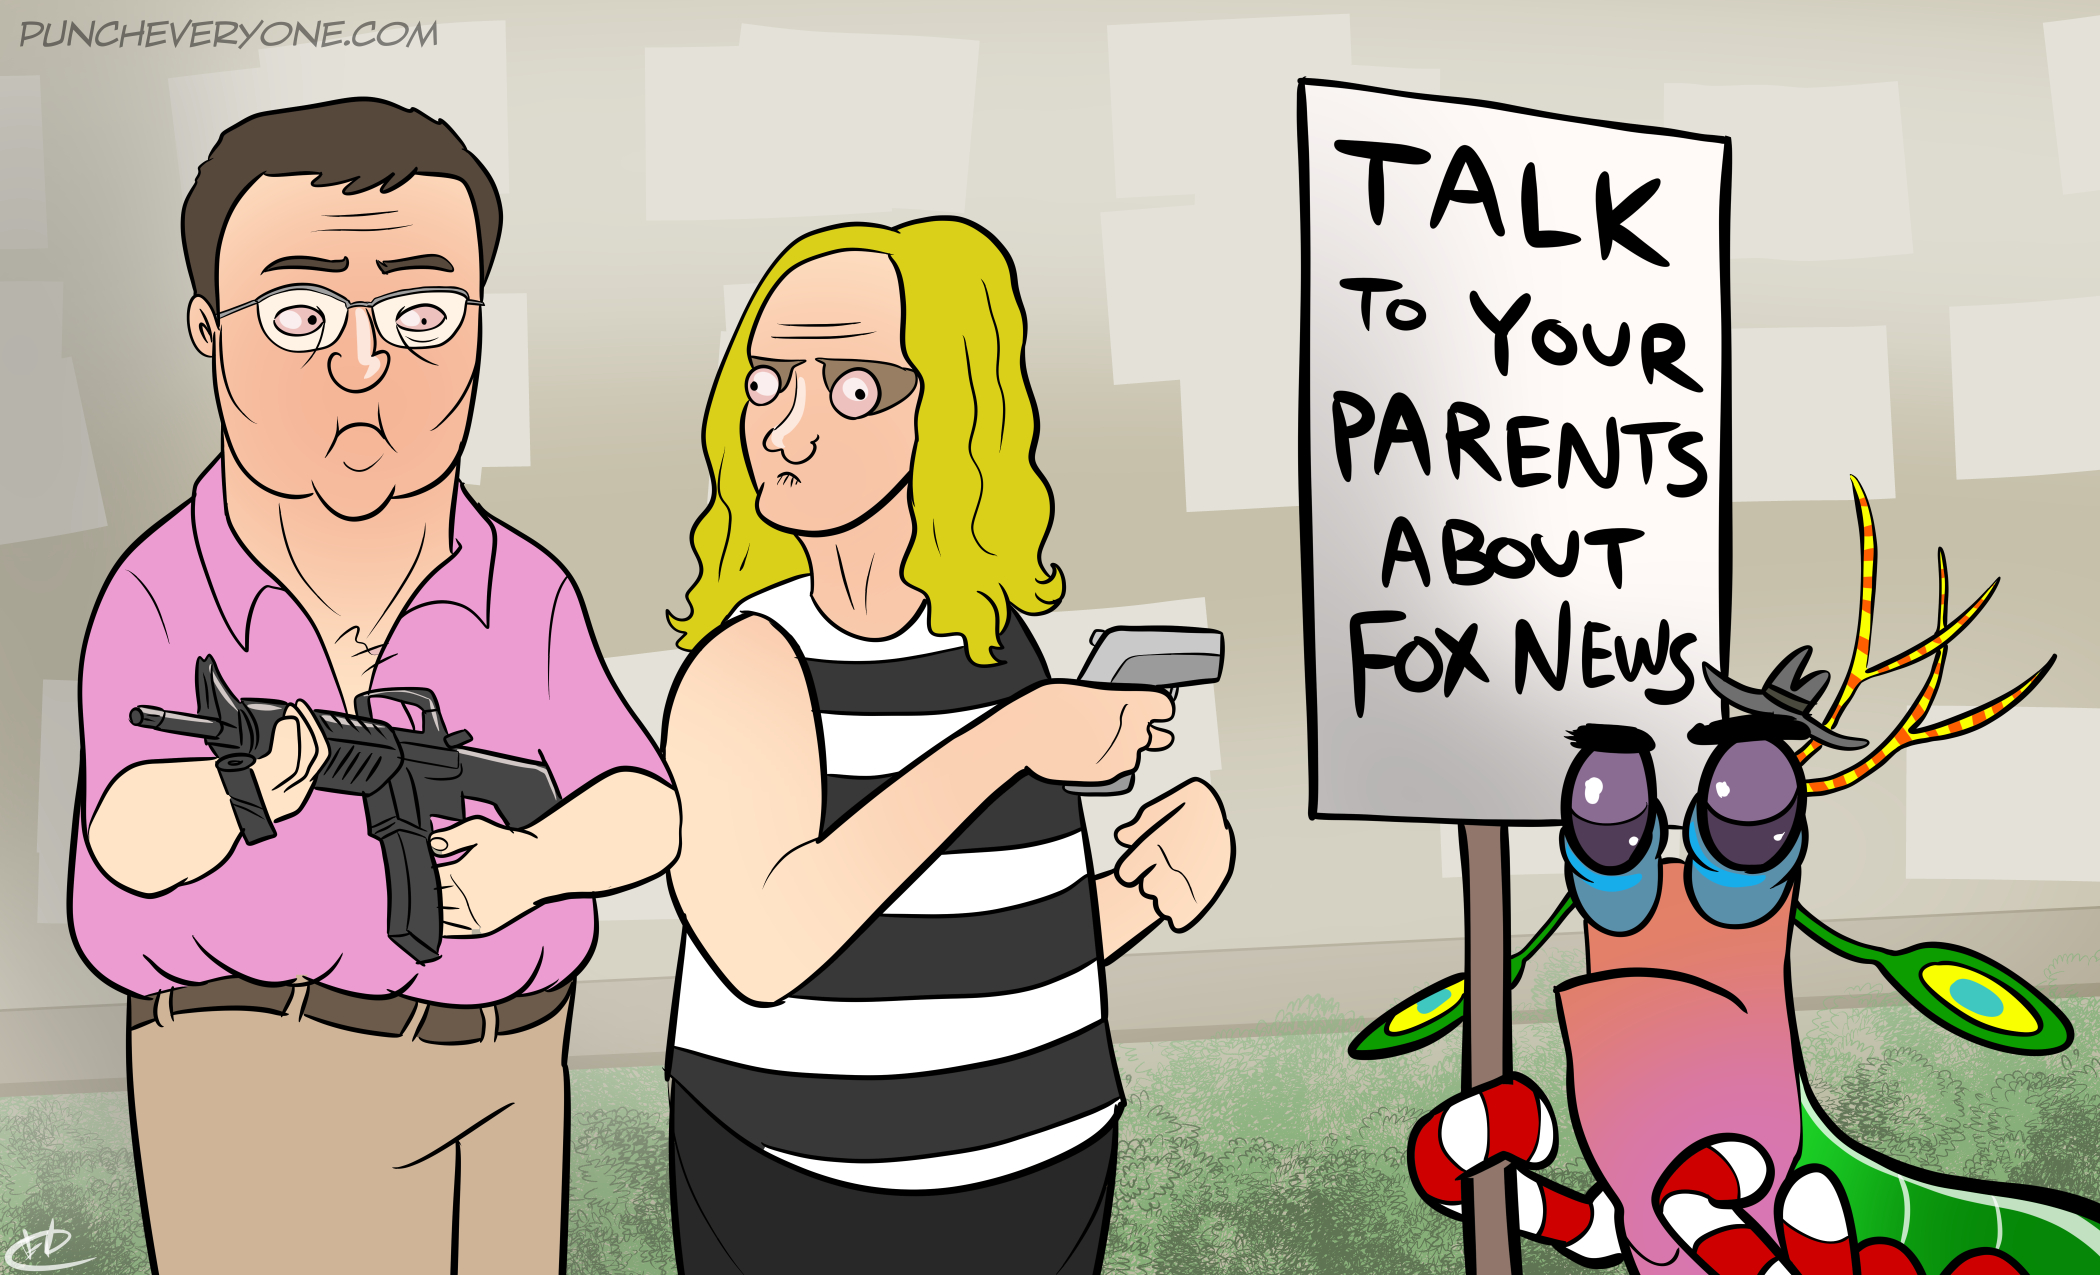 No, seriously talk to your parents about Fox News.